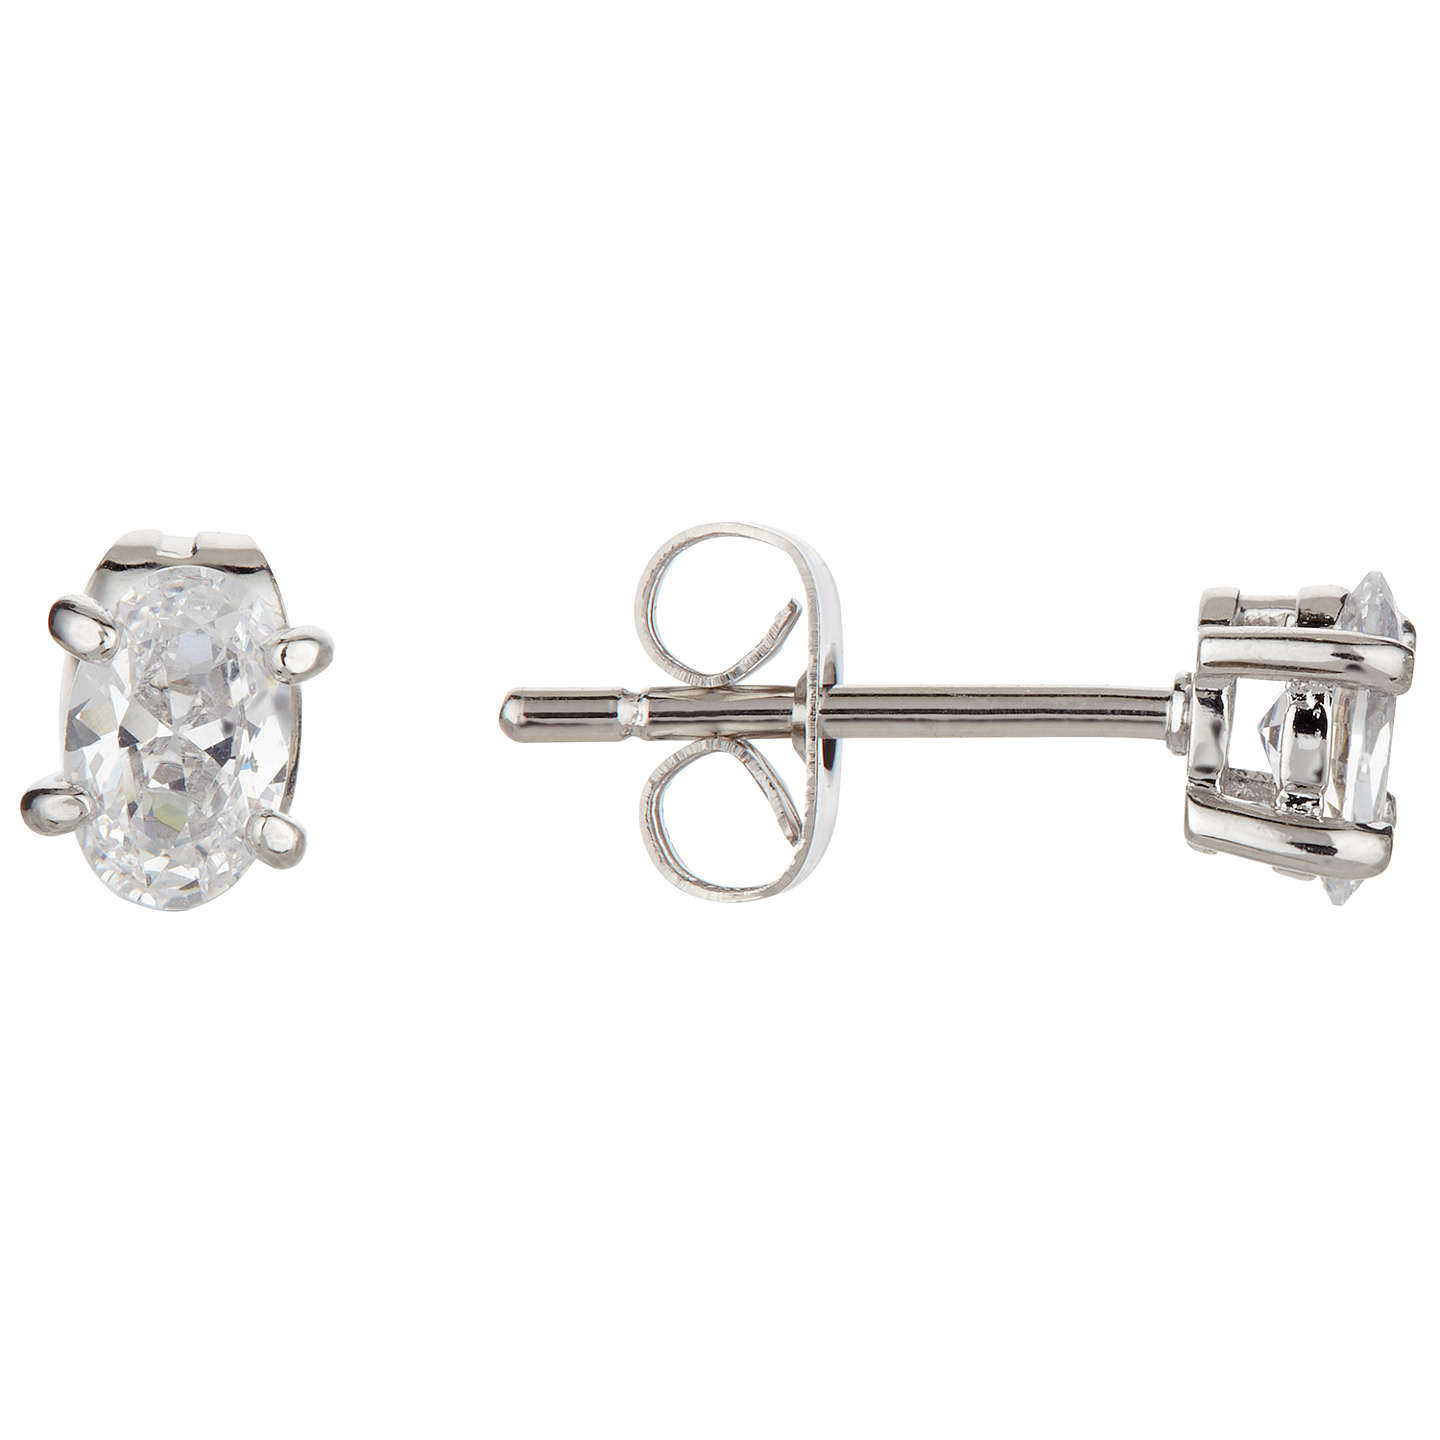 BuyIvory & Co. Epsom Oval Solitaire Cubic Zirconia Stud Earrings, Clear Online at johnlewis.com